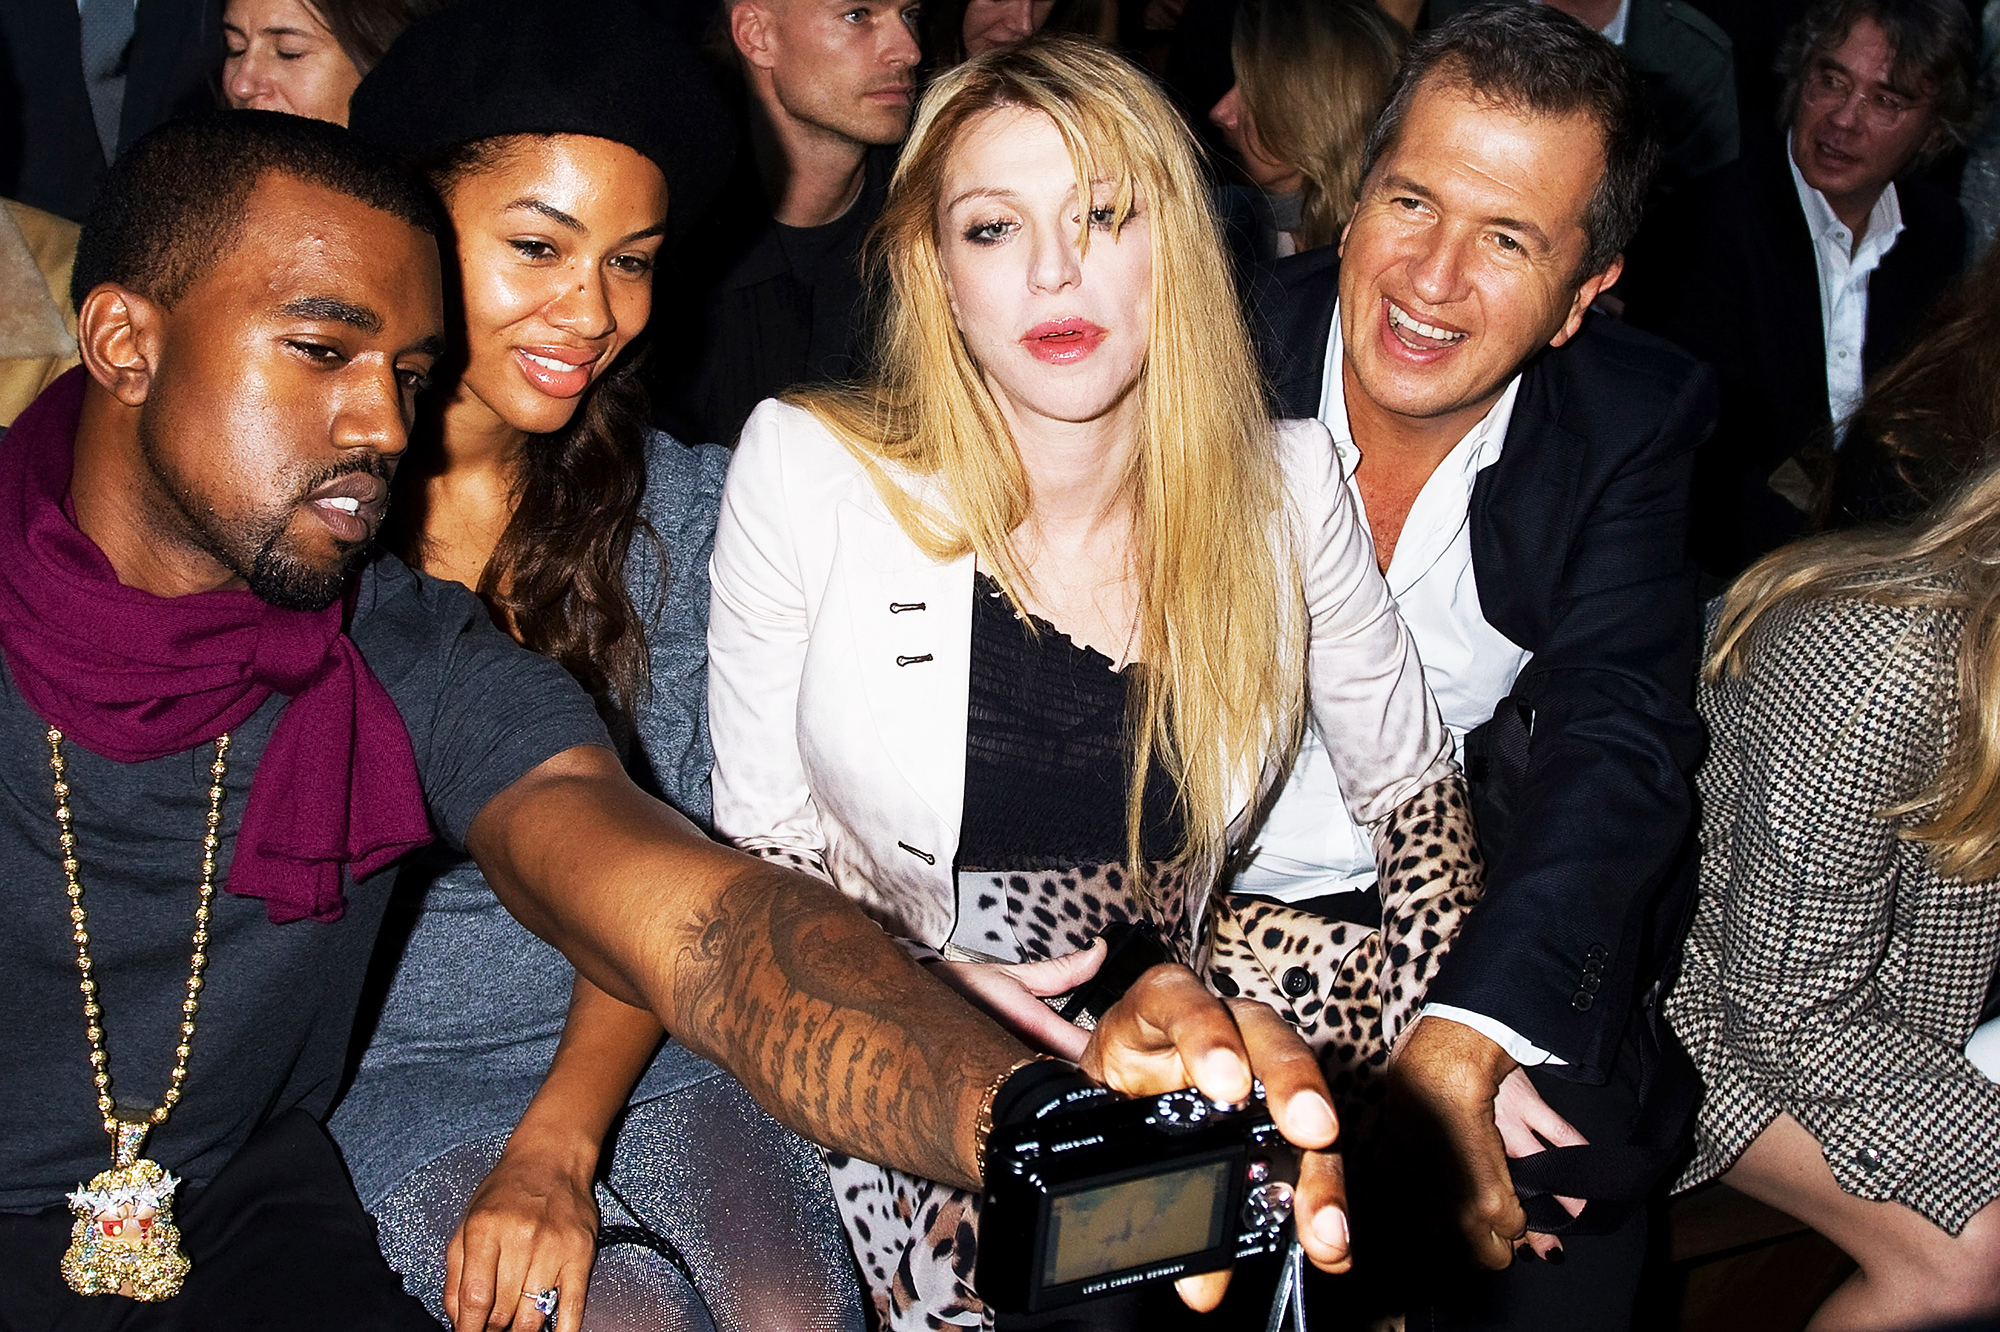 From left: Kanye West, Alexis Pfeiffer, Courtney Love and Mario Testino in Paris, on Oct. 3, 2007.